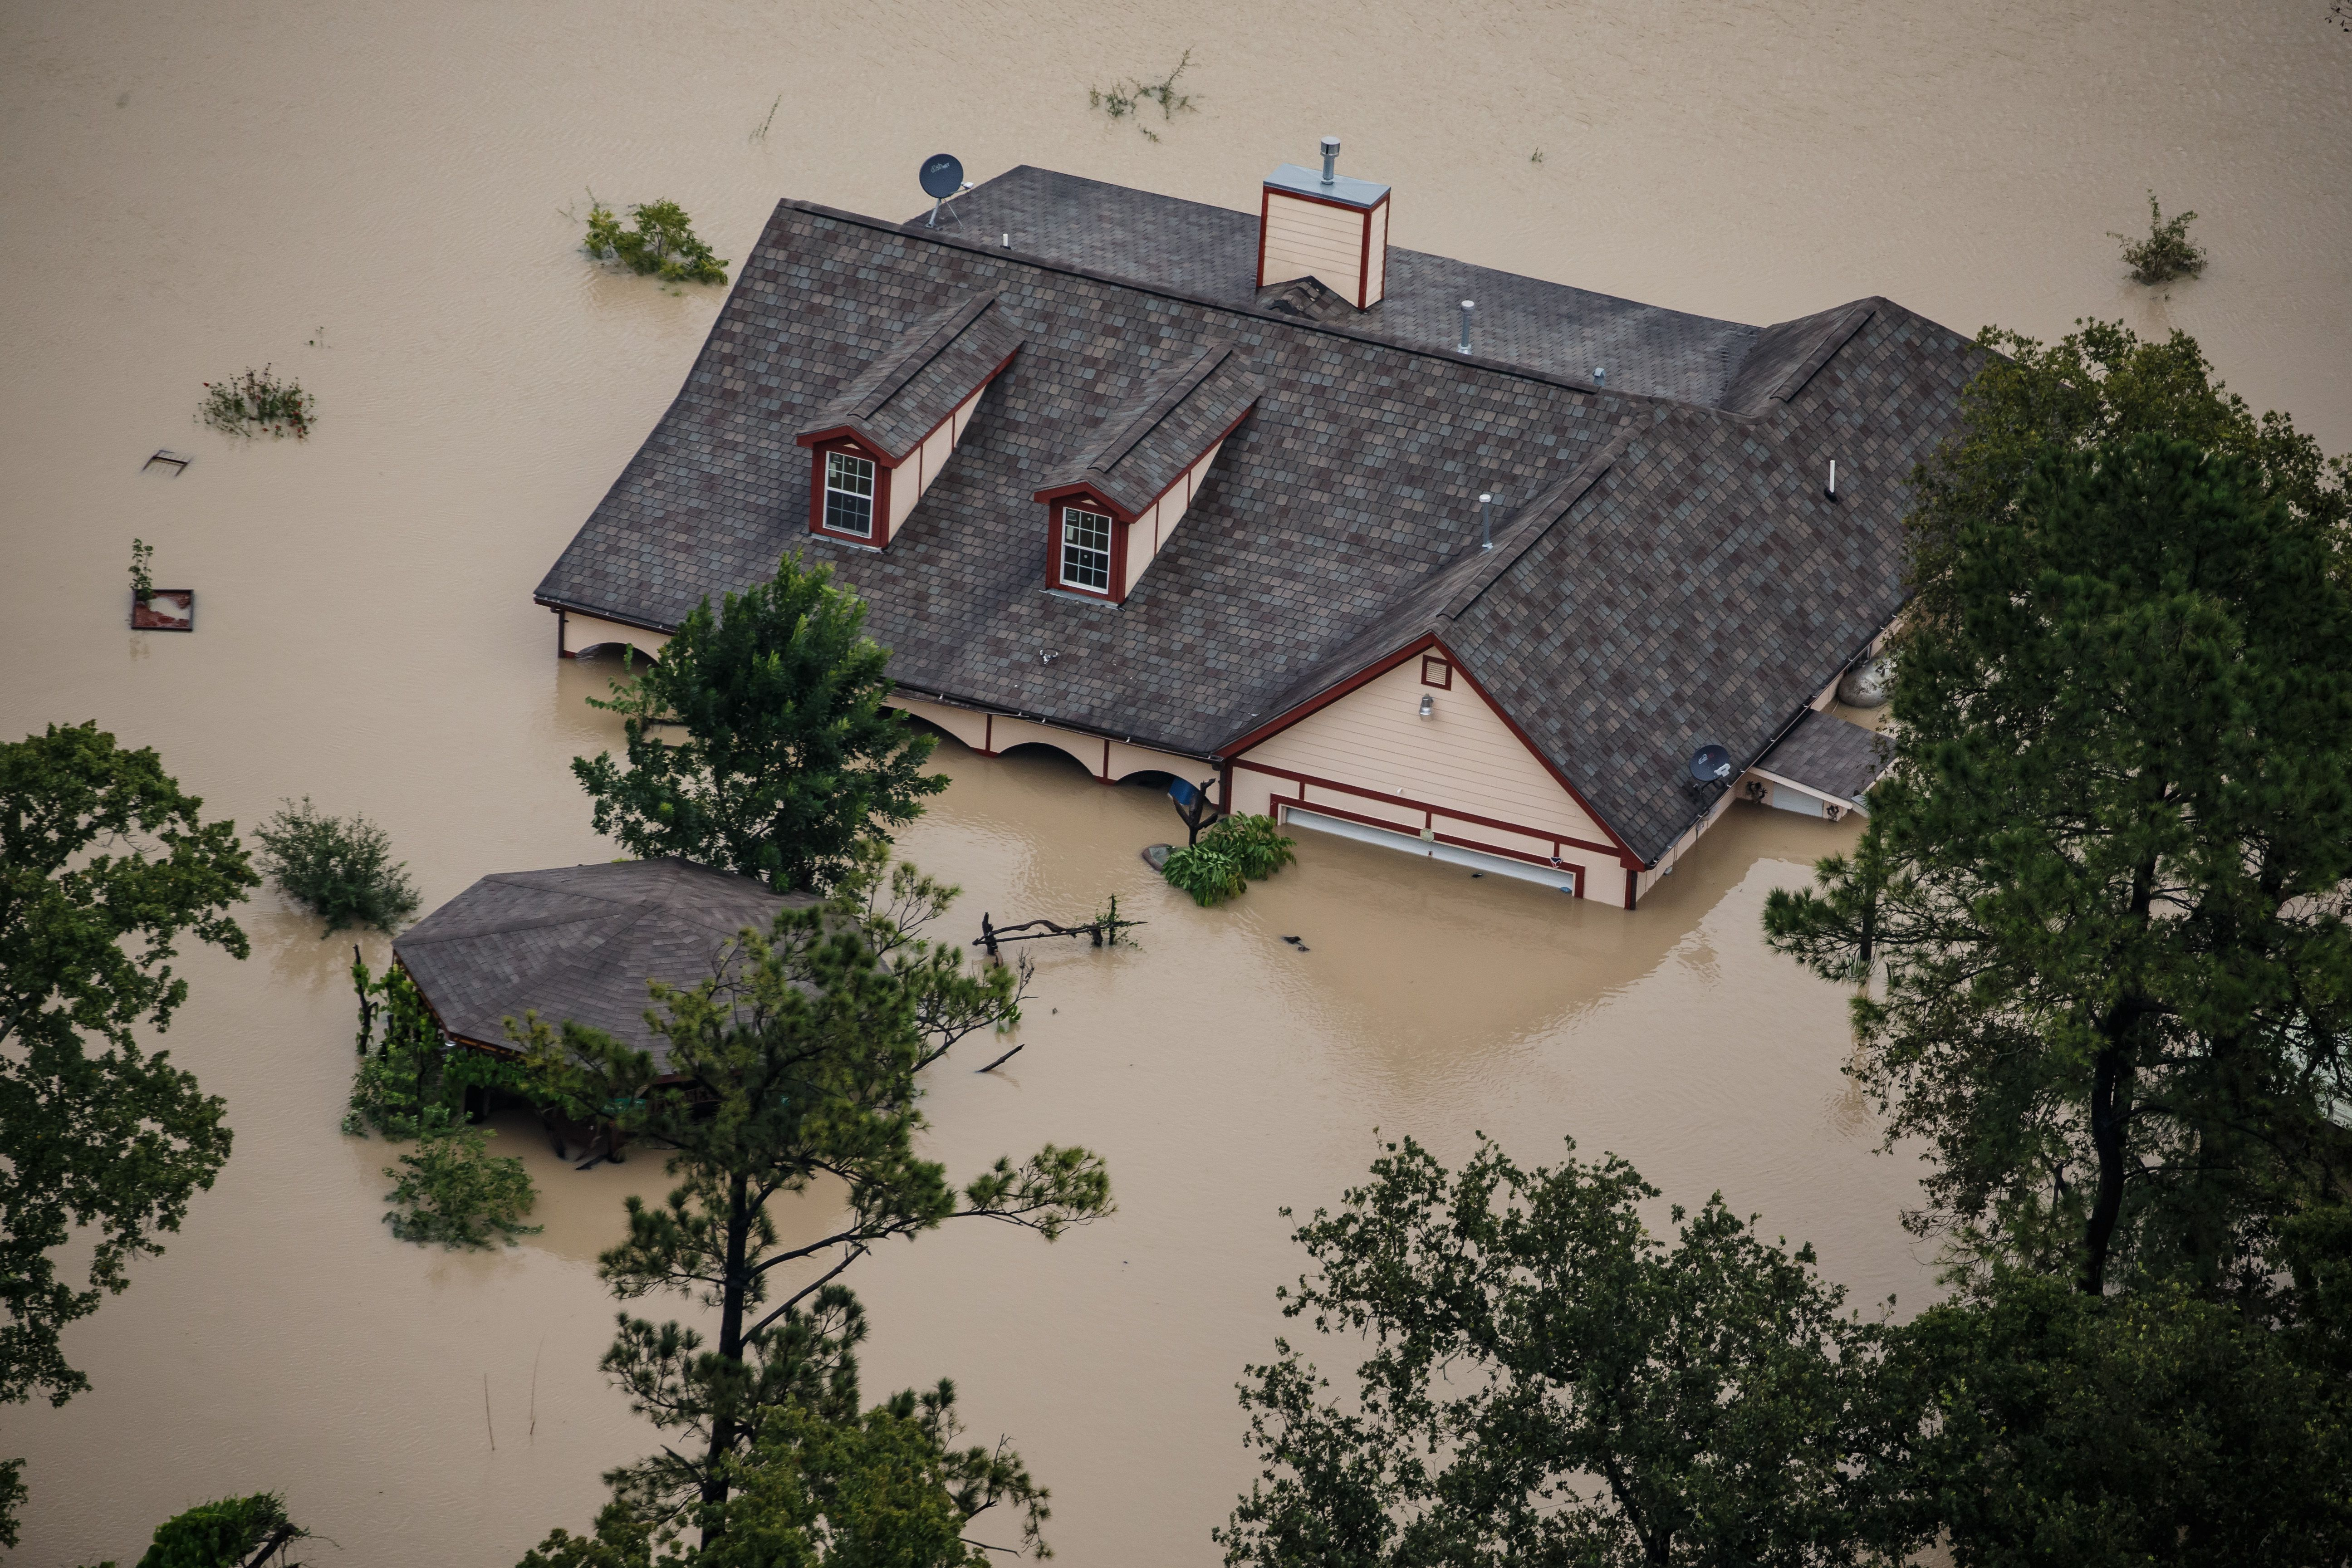 A House Is Completely Submerged In Flood Water Flooded House Flood Risk Flood